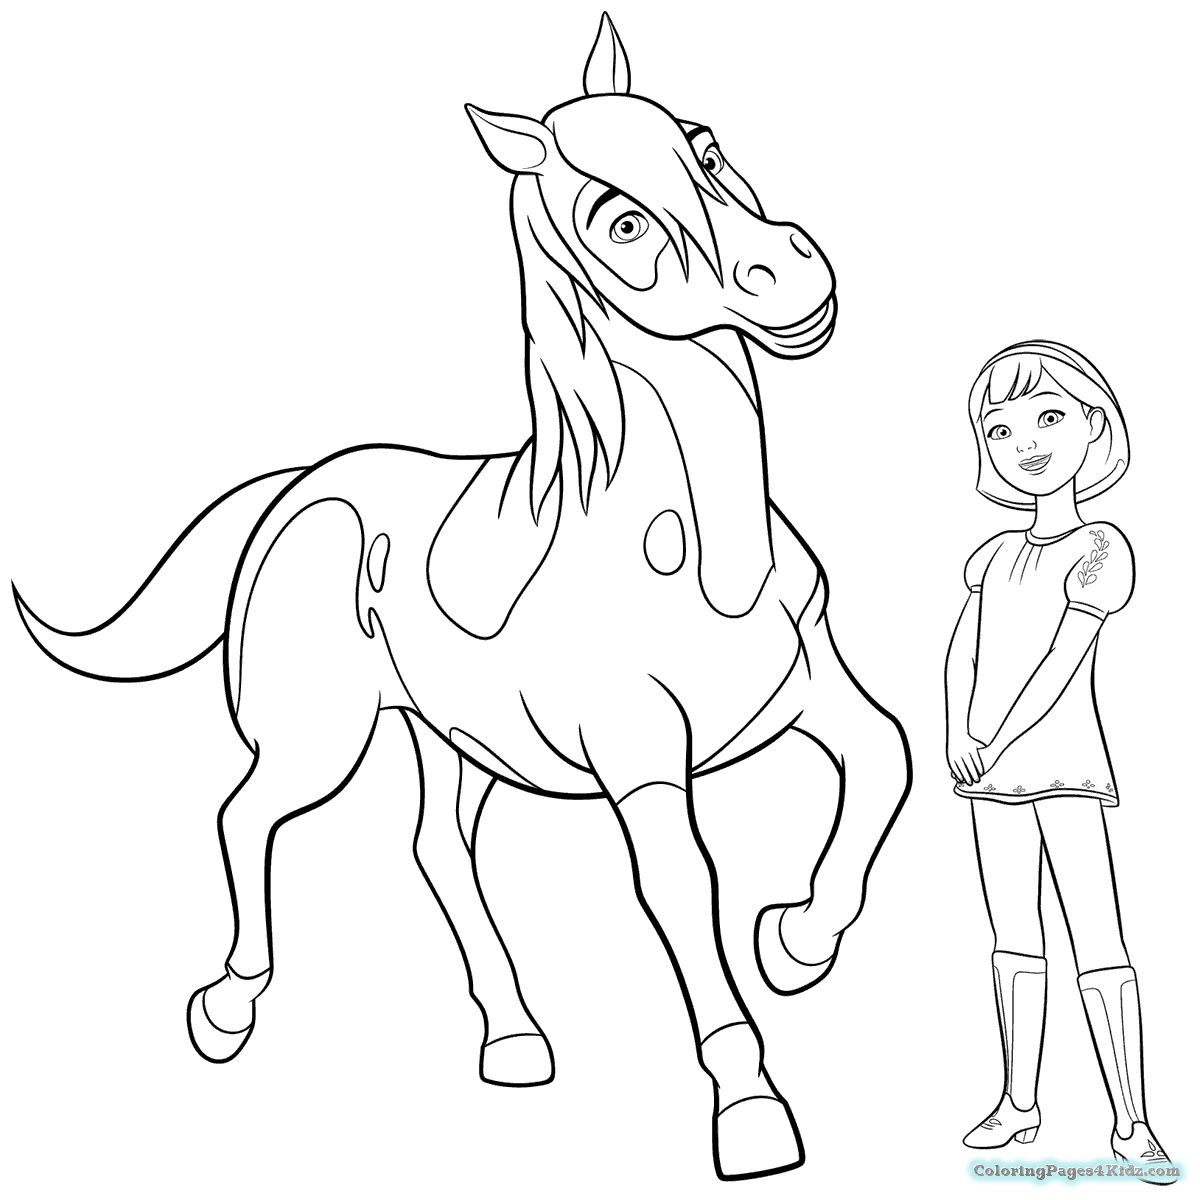 dreamworks spirit coloring pages dreamworks coloring pages rain coloring pages pages dreamworks spirit coloring